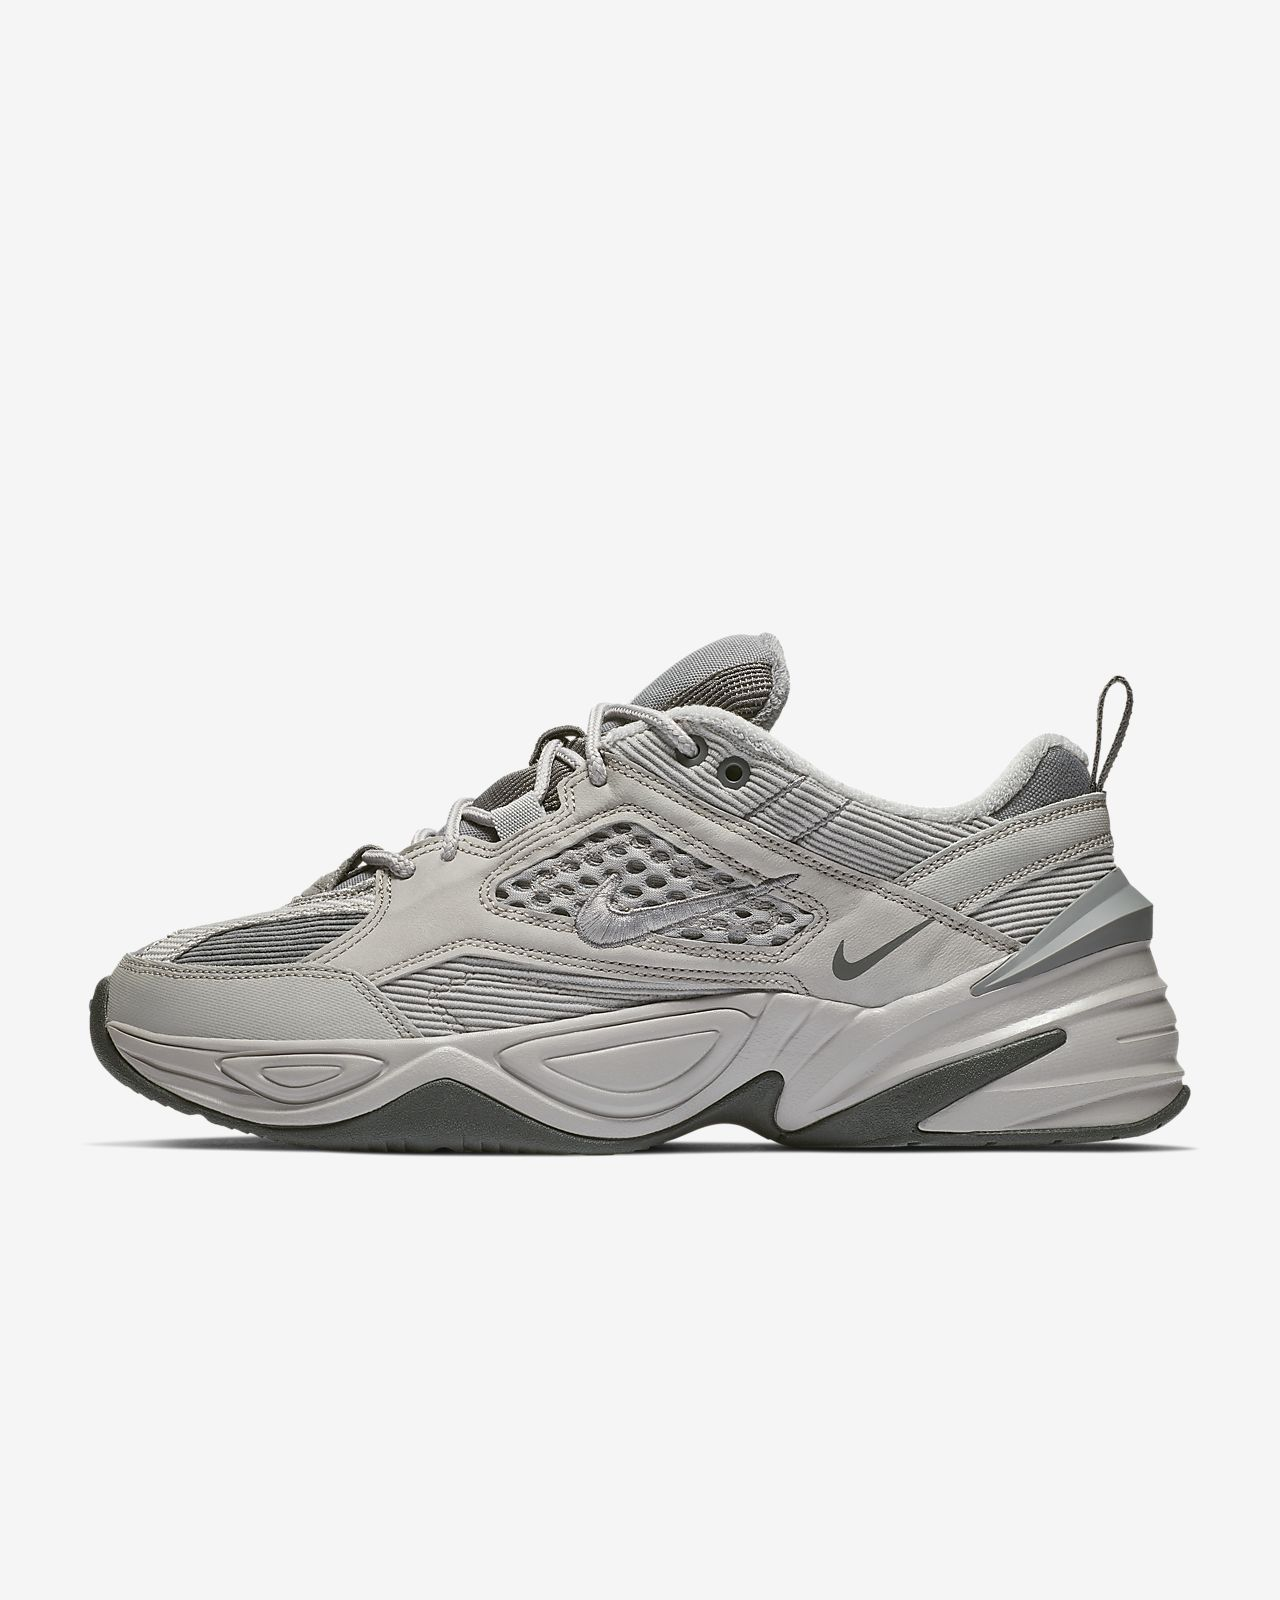 2382a3499885b Nike M2K Tekno SP Men s Shoe. Nike.com GB